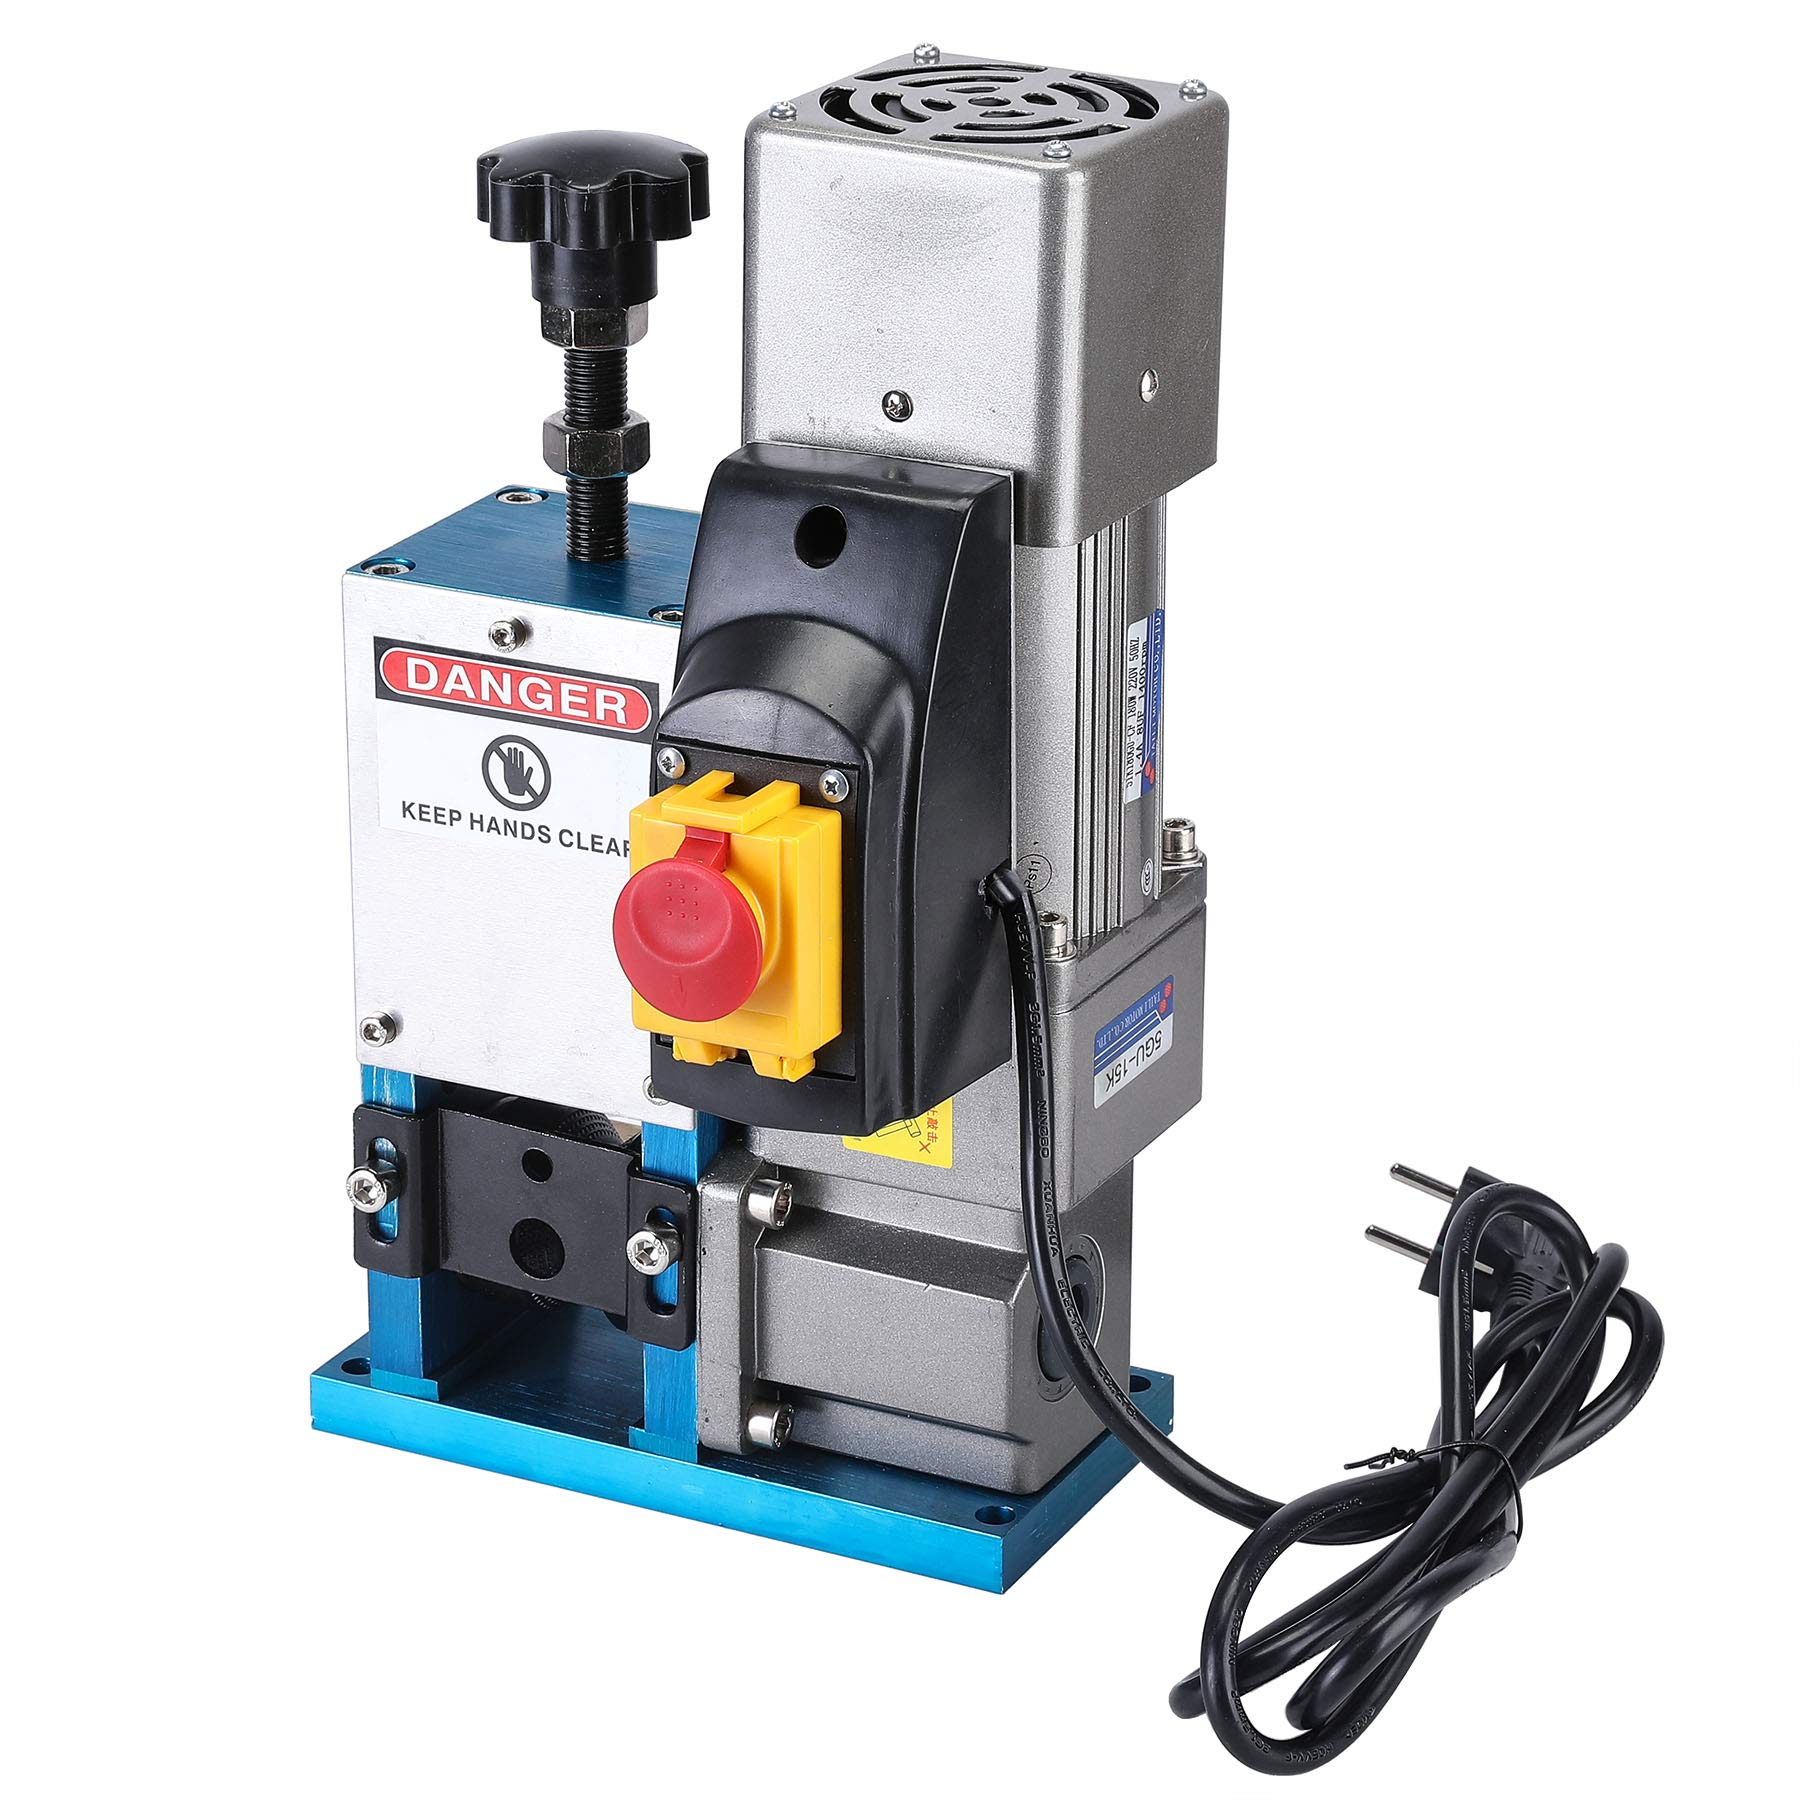 CO-Z Upgraded Automatic Electric Wire Stripping Machine Portable Scrap Cable Stripper for Scrap Copper Recycling by CO-Z